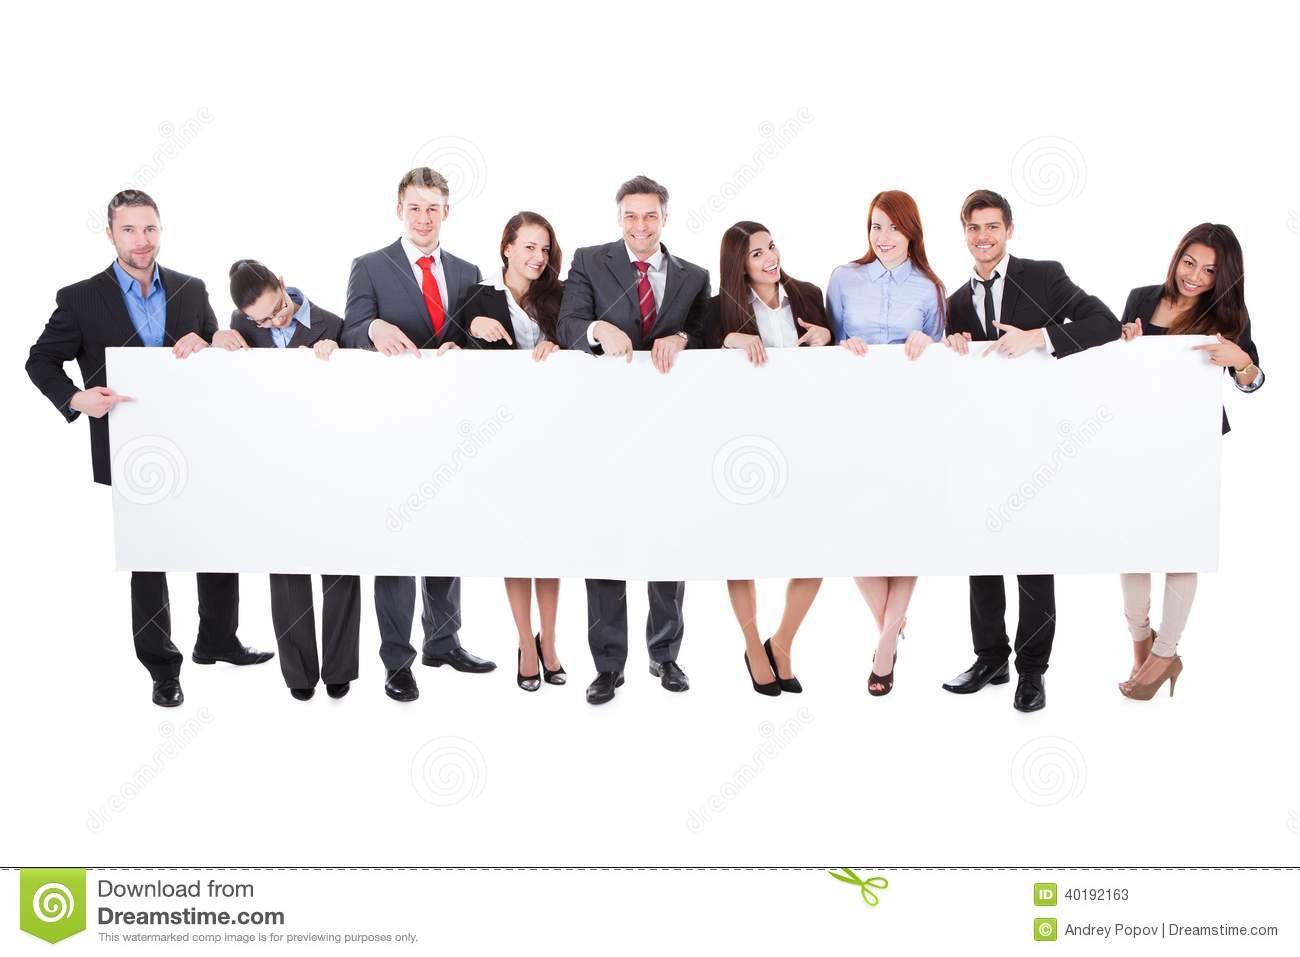 Stock Photos Large Group Businesspeople Presenting Banner Empty Isolated White Image40192163 on teacher business card design